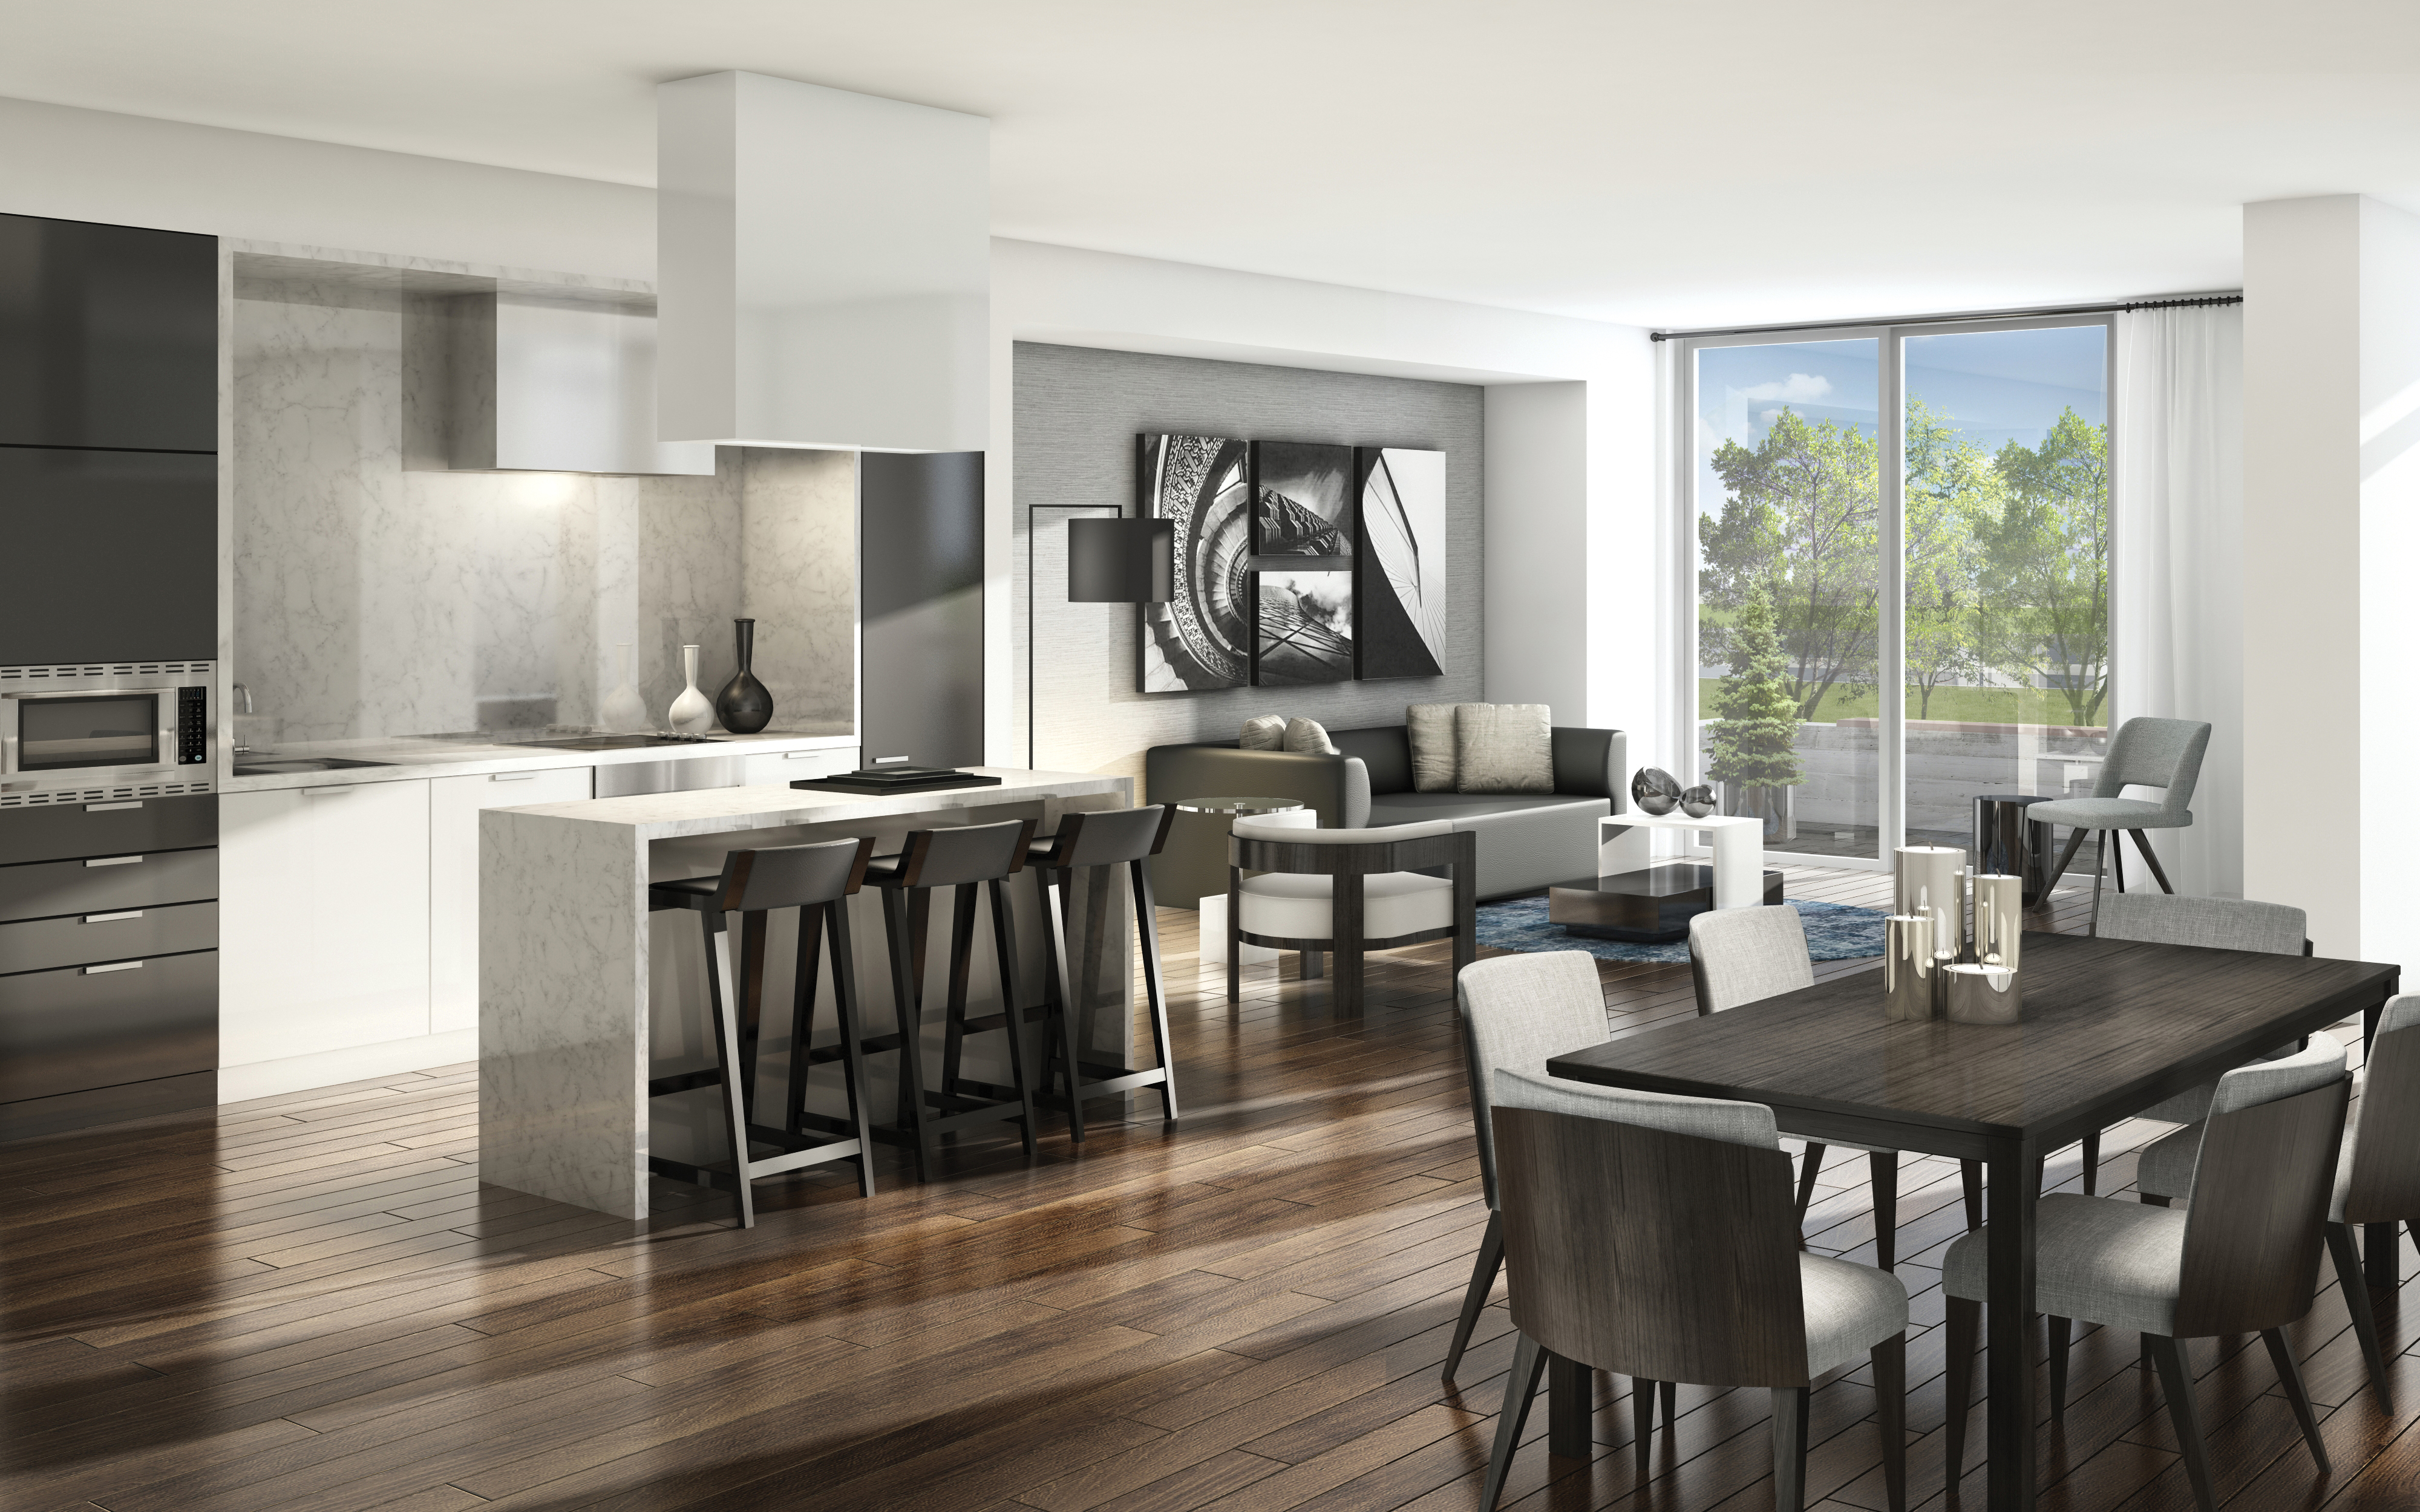 Townhome living and dining at LINK2 has no detail left unturned with Euro-Style kitchens, floor-to-ceiling windows and elegant laminate throughout